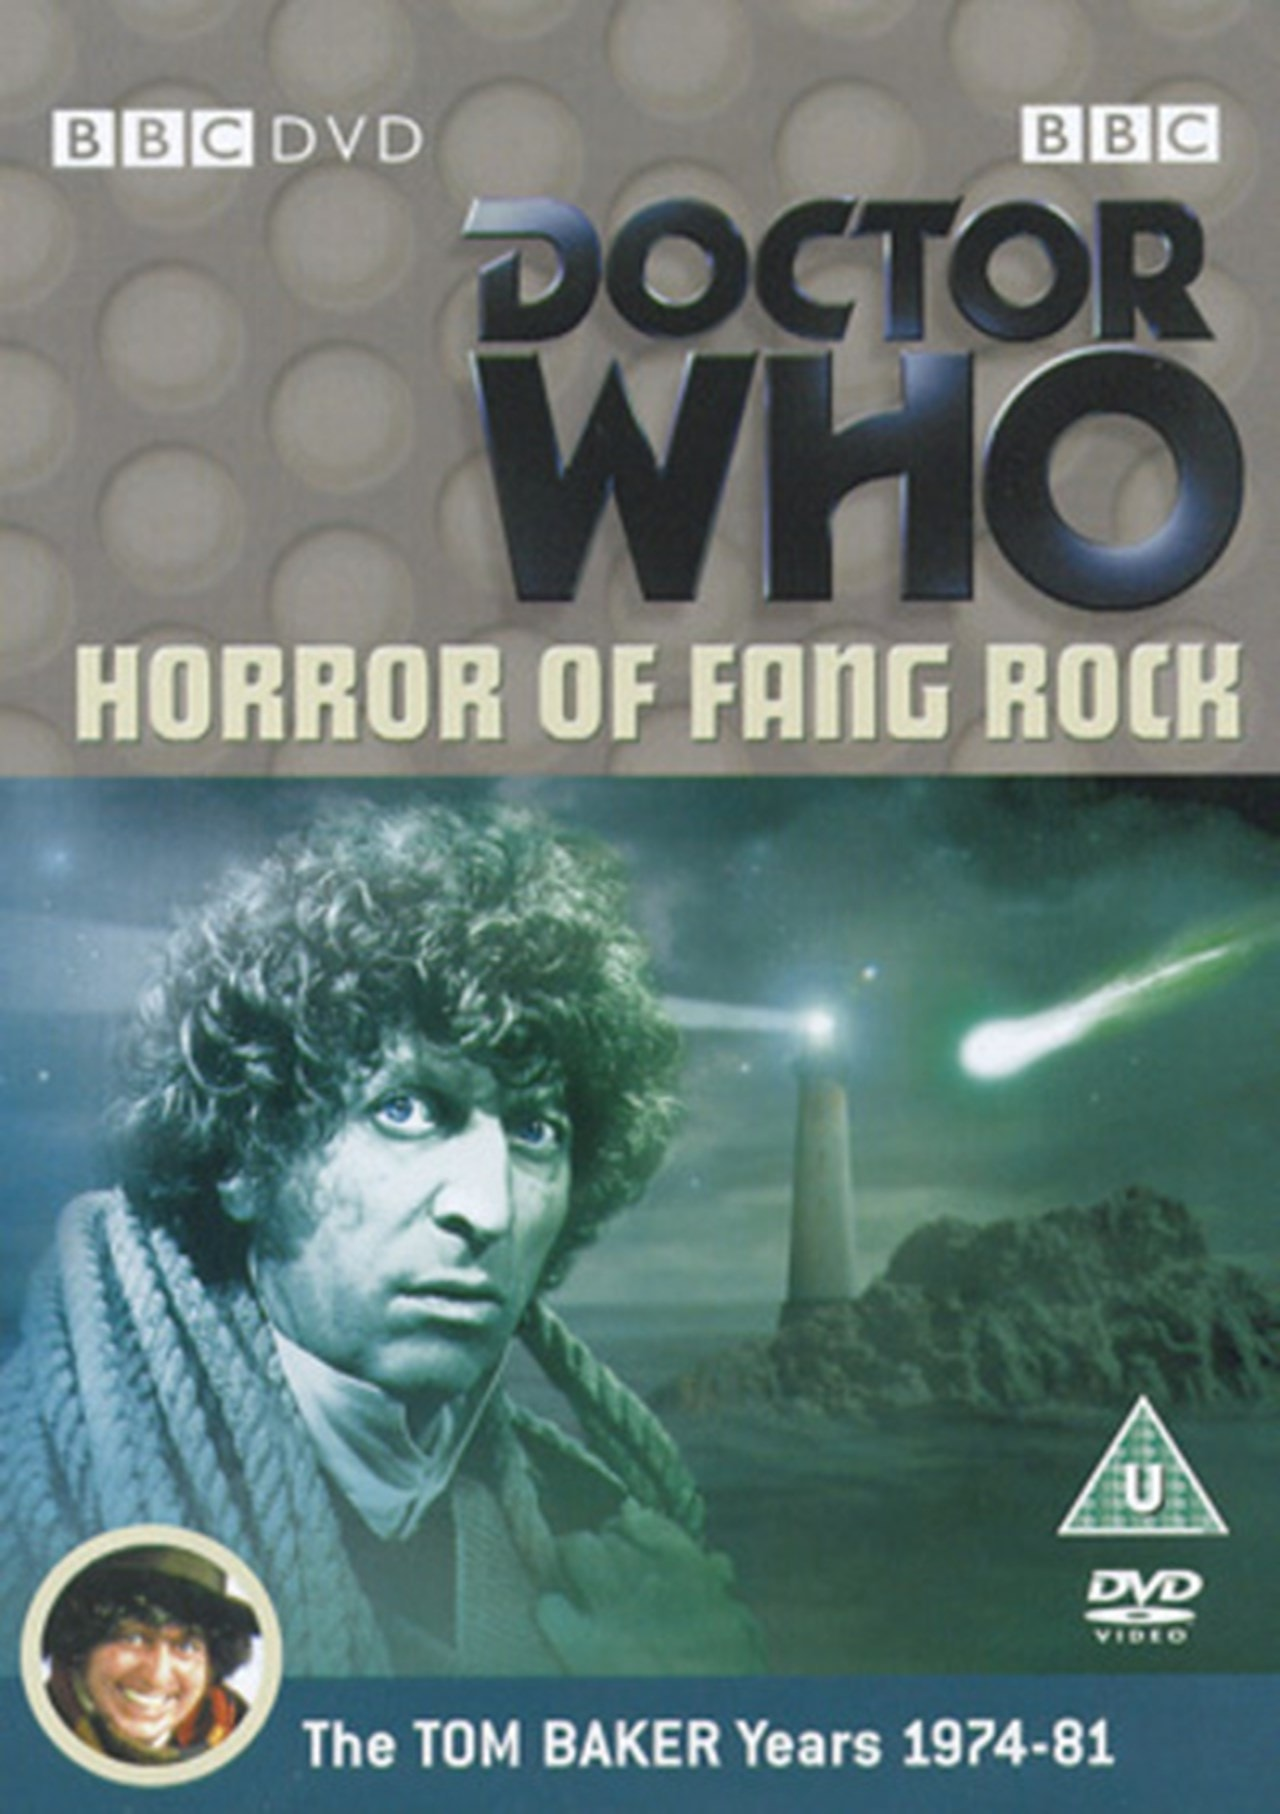 Doctor Who: The Horror of Fang Rock - 1